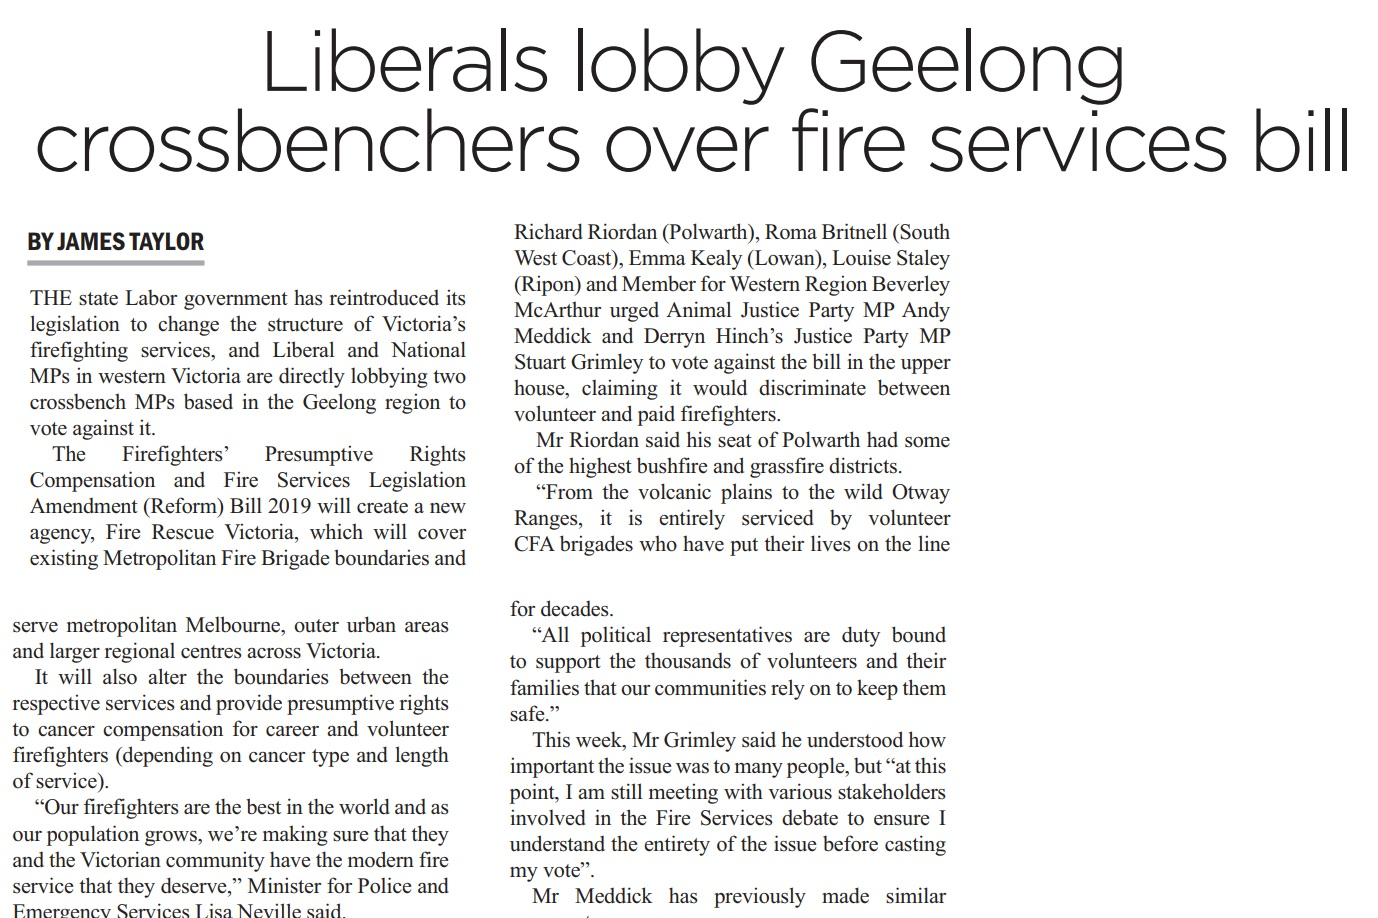 13062019+Liberals+lobby+Geelong+crossbenchers+over+fire+services+bill+-+Bellarine+and+Surf+Coast+Times.jpg